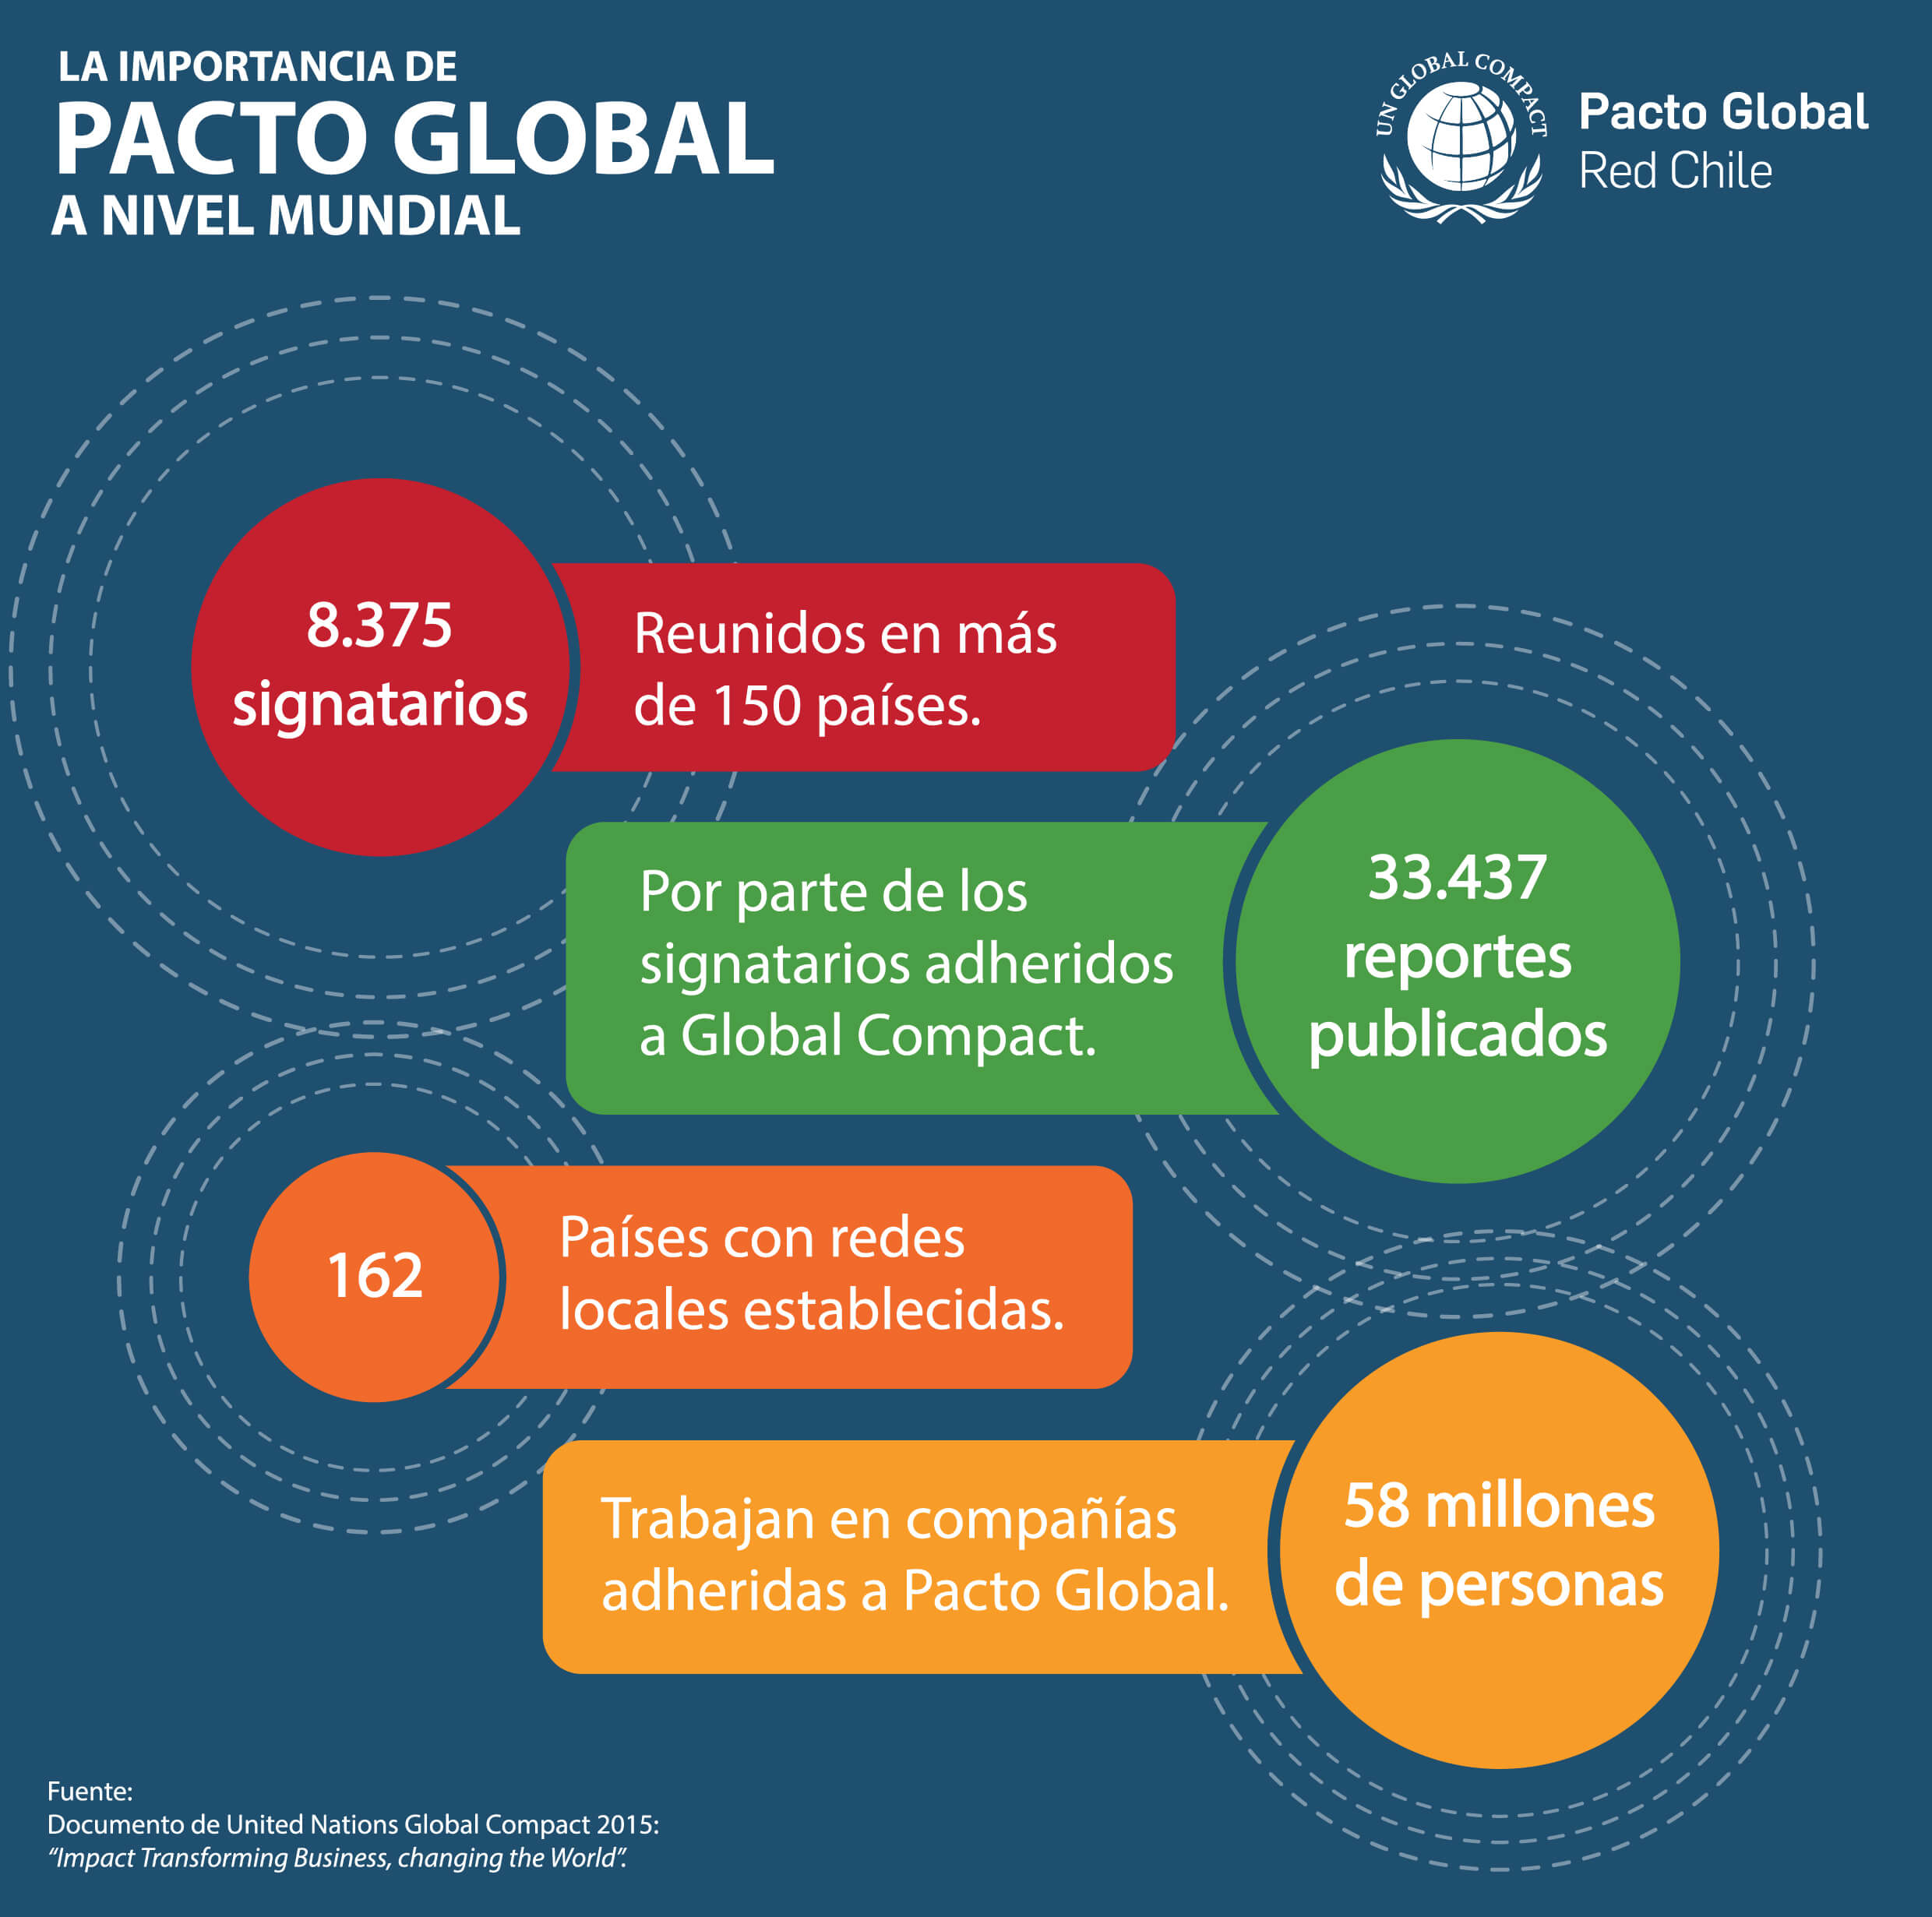 La importancia de Pacto Global a nivel mundial